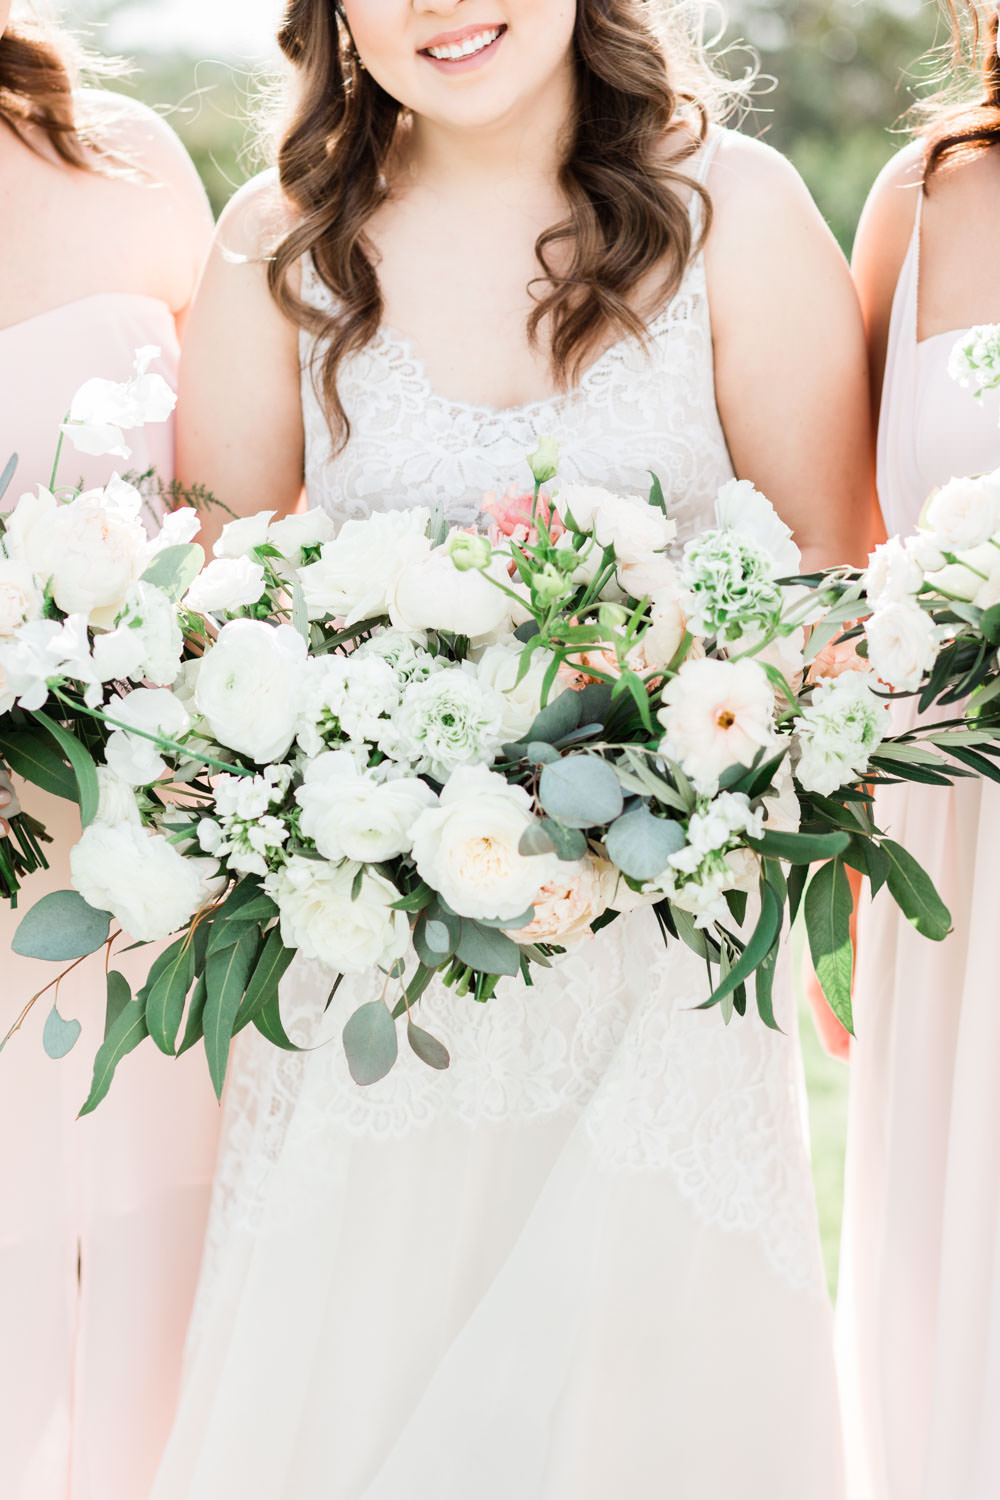 Bridal party bouquets with white and green at Ethereal Open Air Resort, Cavin Elizabeth Photography